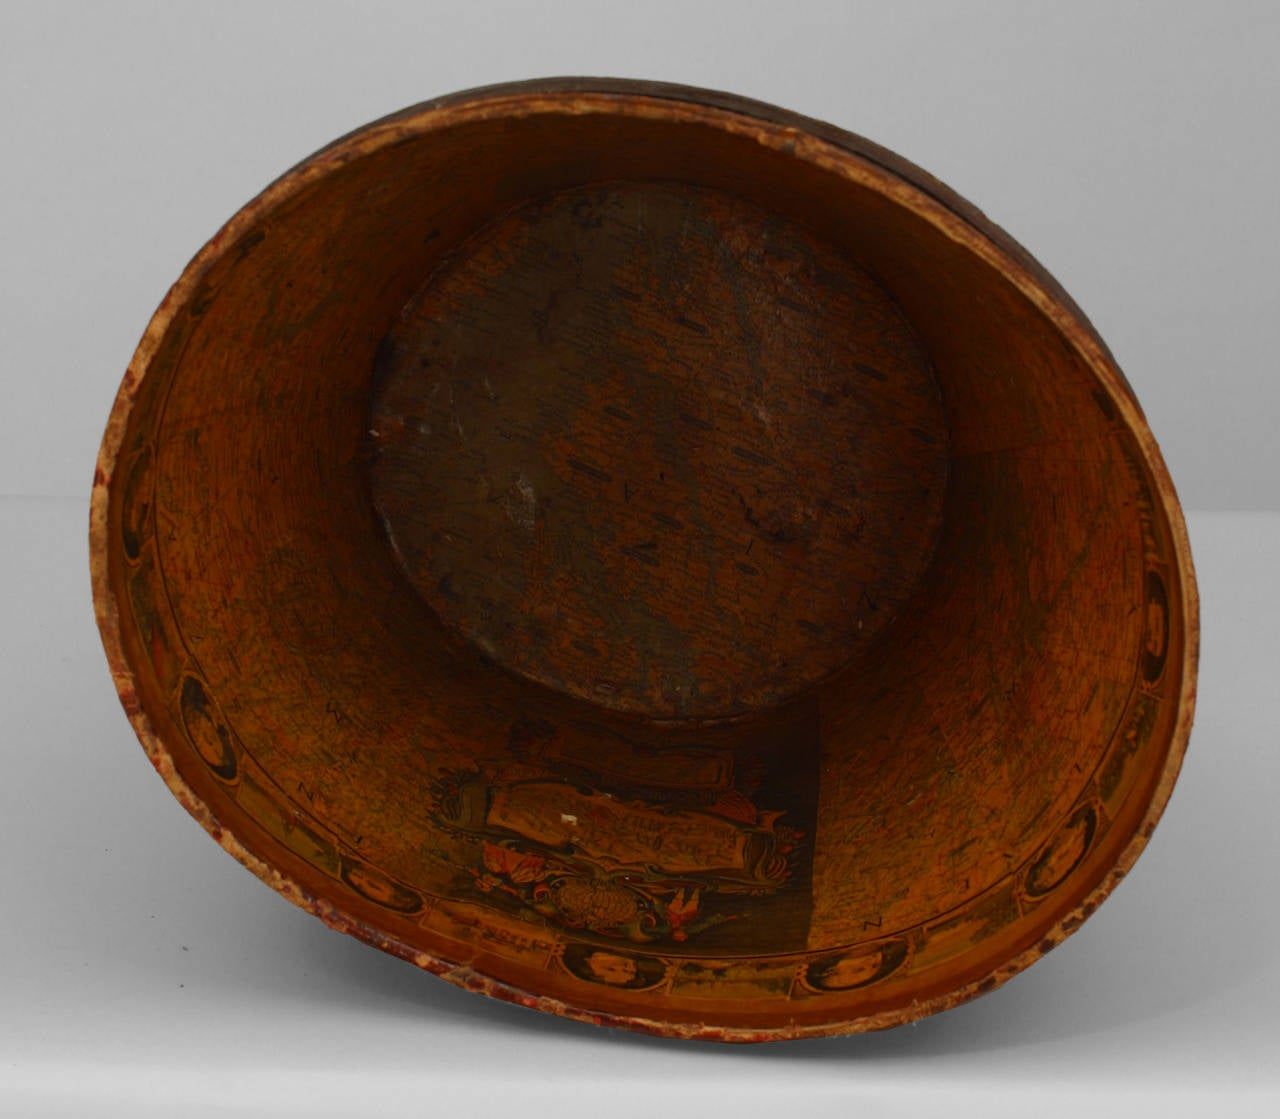 19th century American dark red leather top hat box with decoupage interior showing a map of America and portraits of 18/19th century notables. Please note that the box is missing its lid.